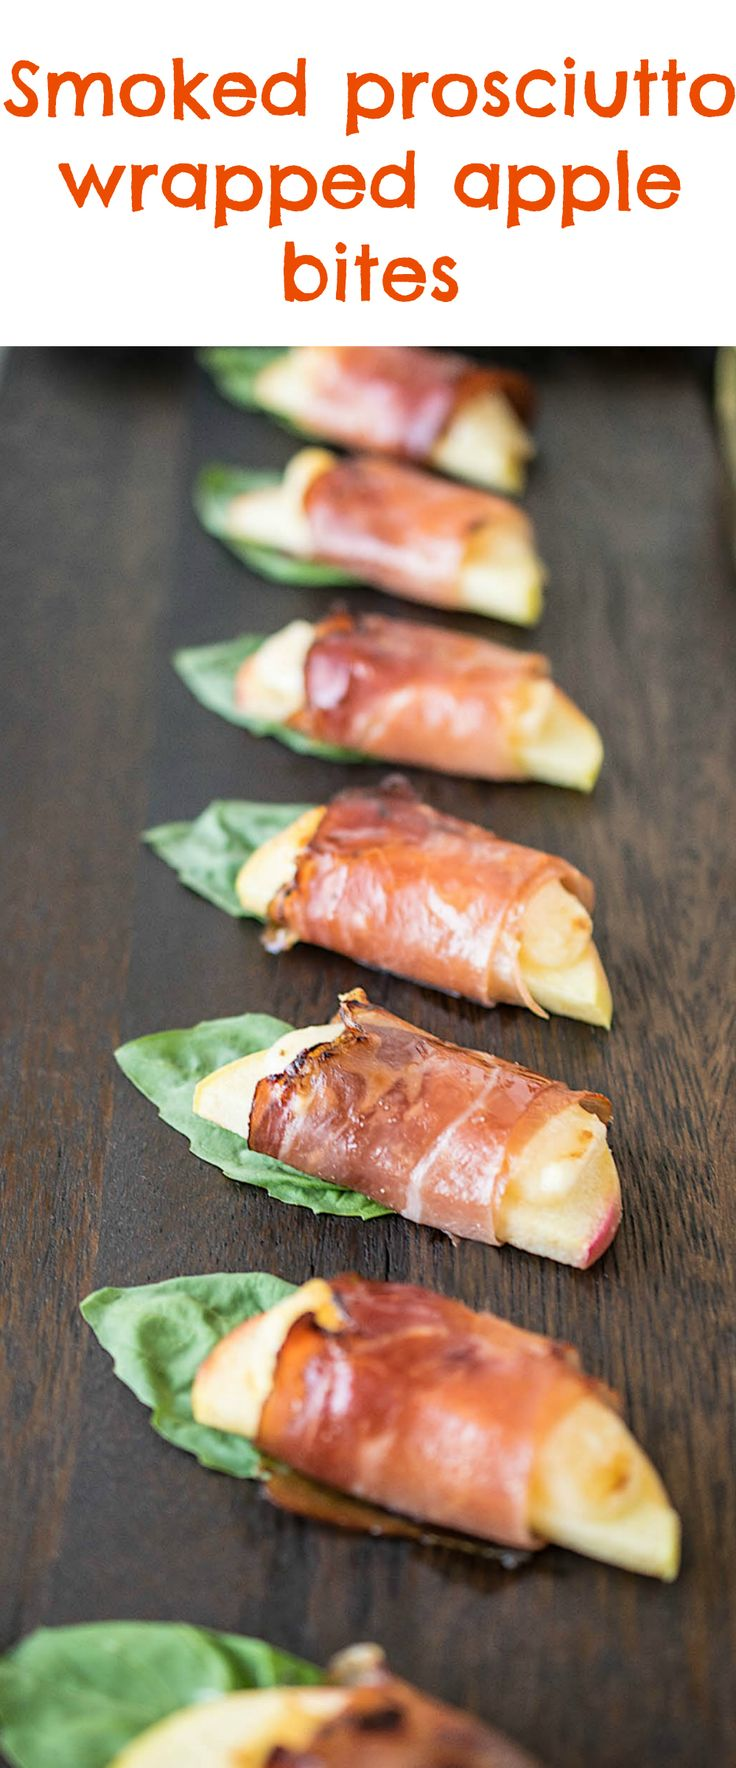 Smoked prosciutto wrapped apple bites are an easy and delicious warm appetizer that are perfect to serve with wine for entertaining. Sweet apples wrapped in Parmesan cheese, smoked prosciutto and basil served warm. @cavitwines #CavitWines #LivetheCavitlife #ad